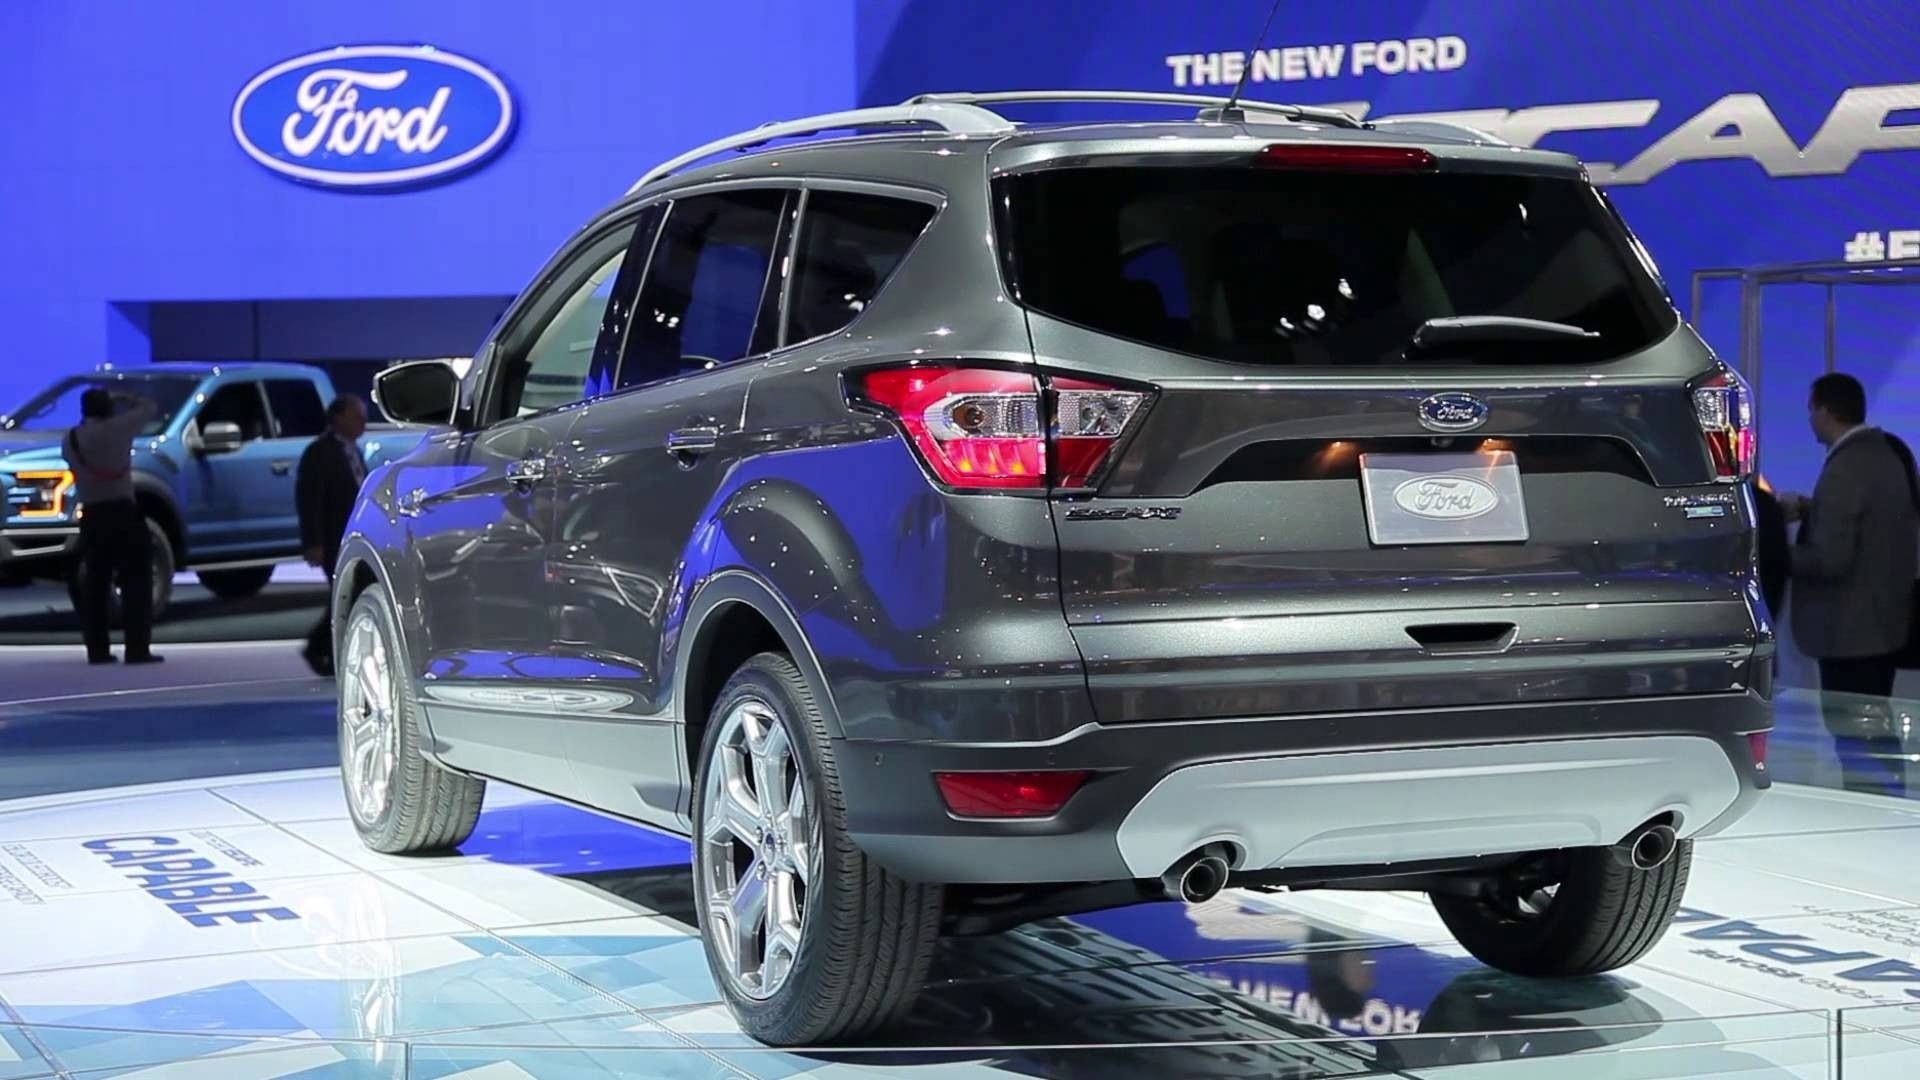 Will 2019 Ford Escape Hybrid Review Have Manual Transmission With Images Ford Escape 2019 Ford